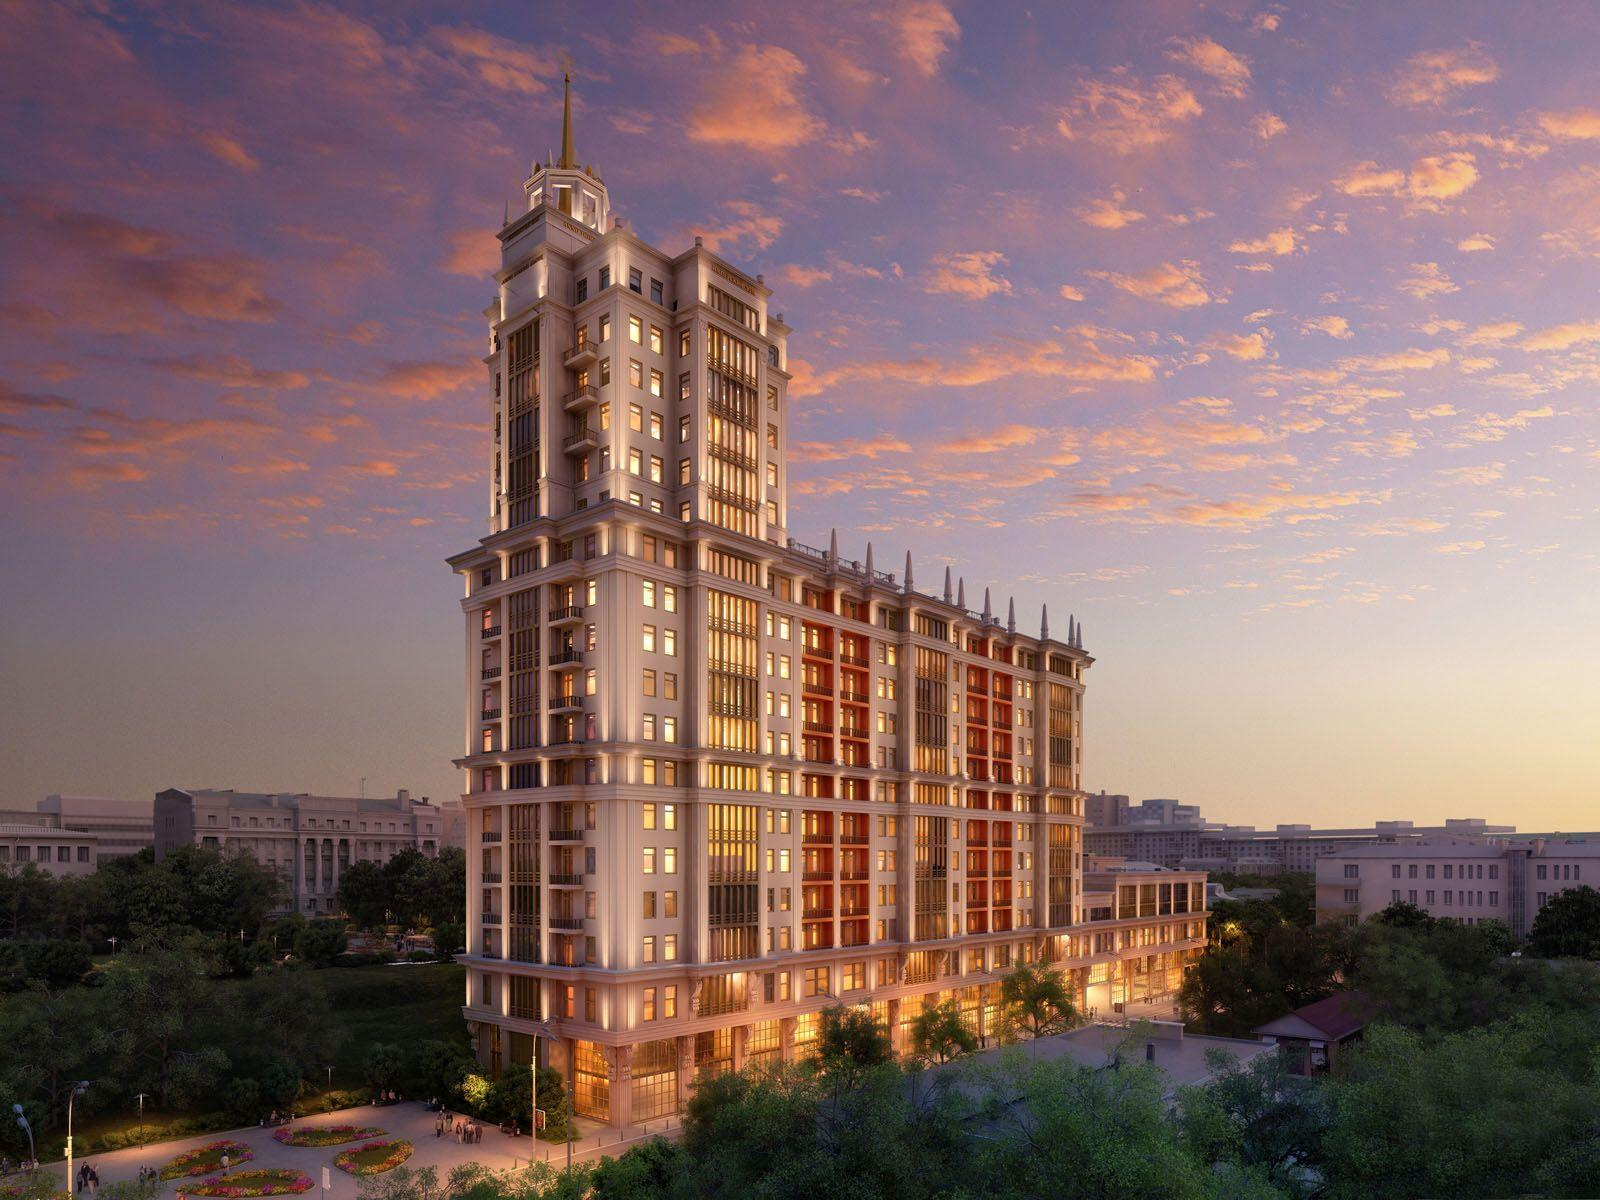 Amazing hotel in moscow wallpapers and images - wallpapers ...